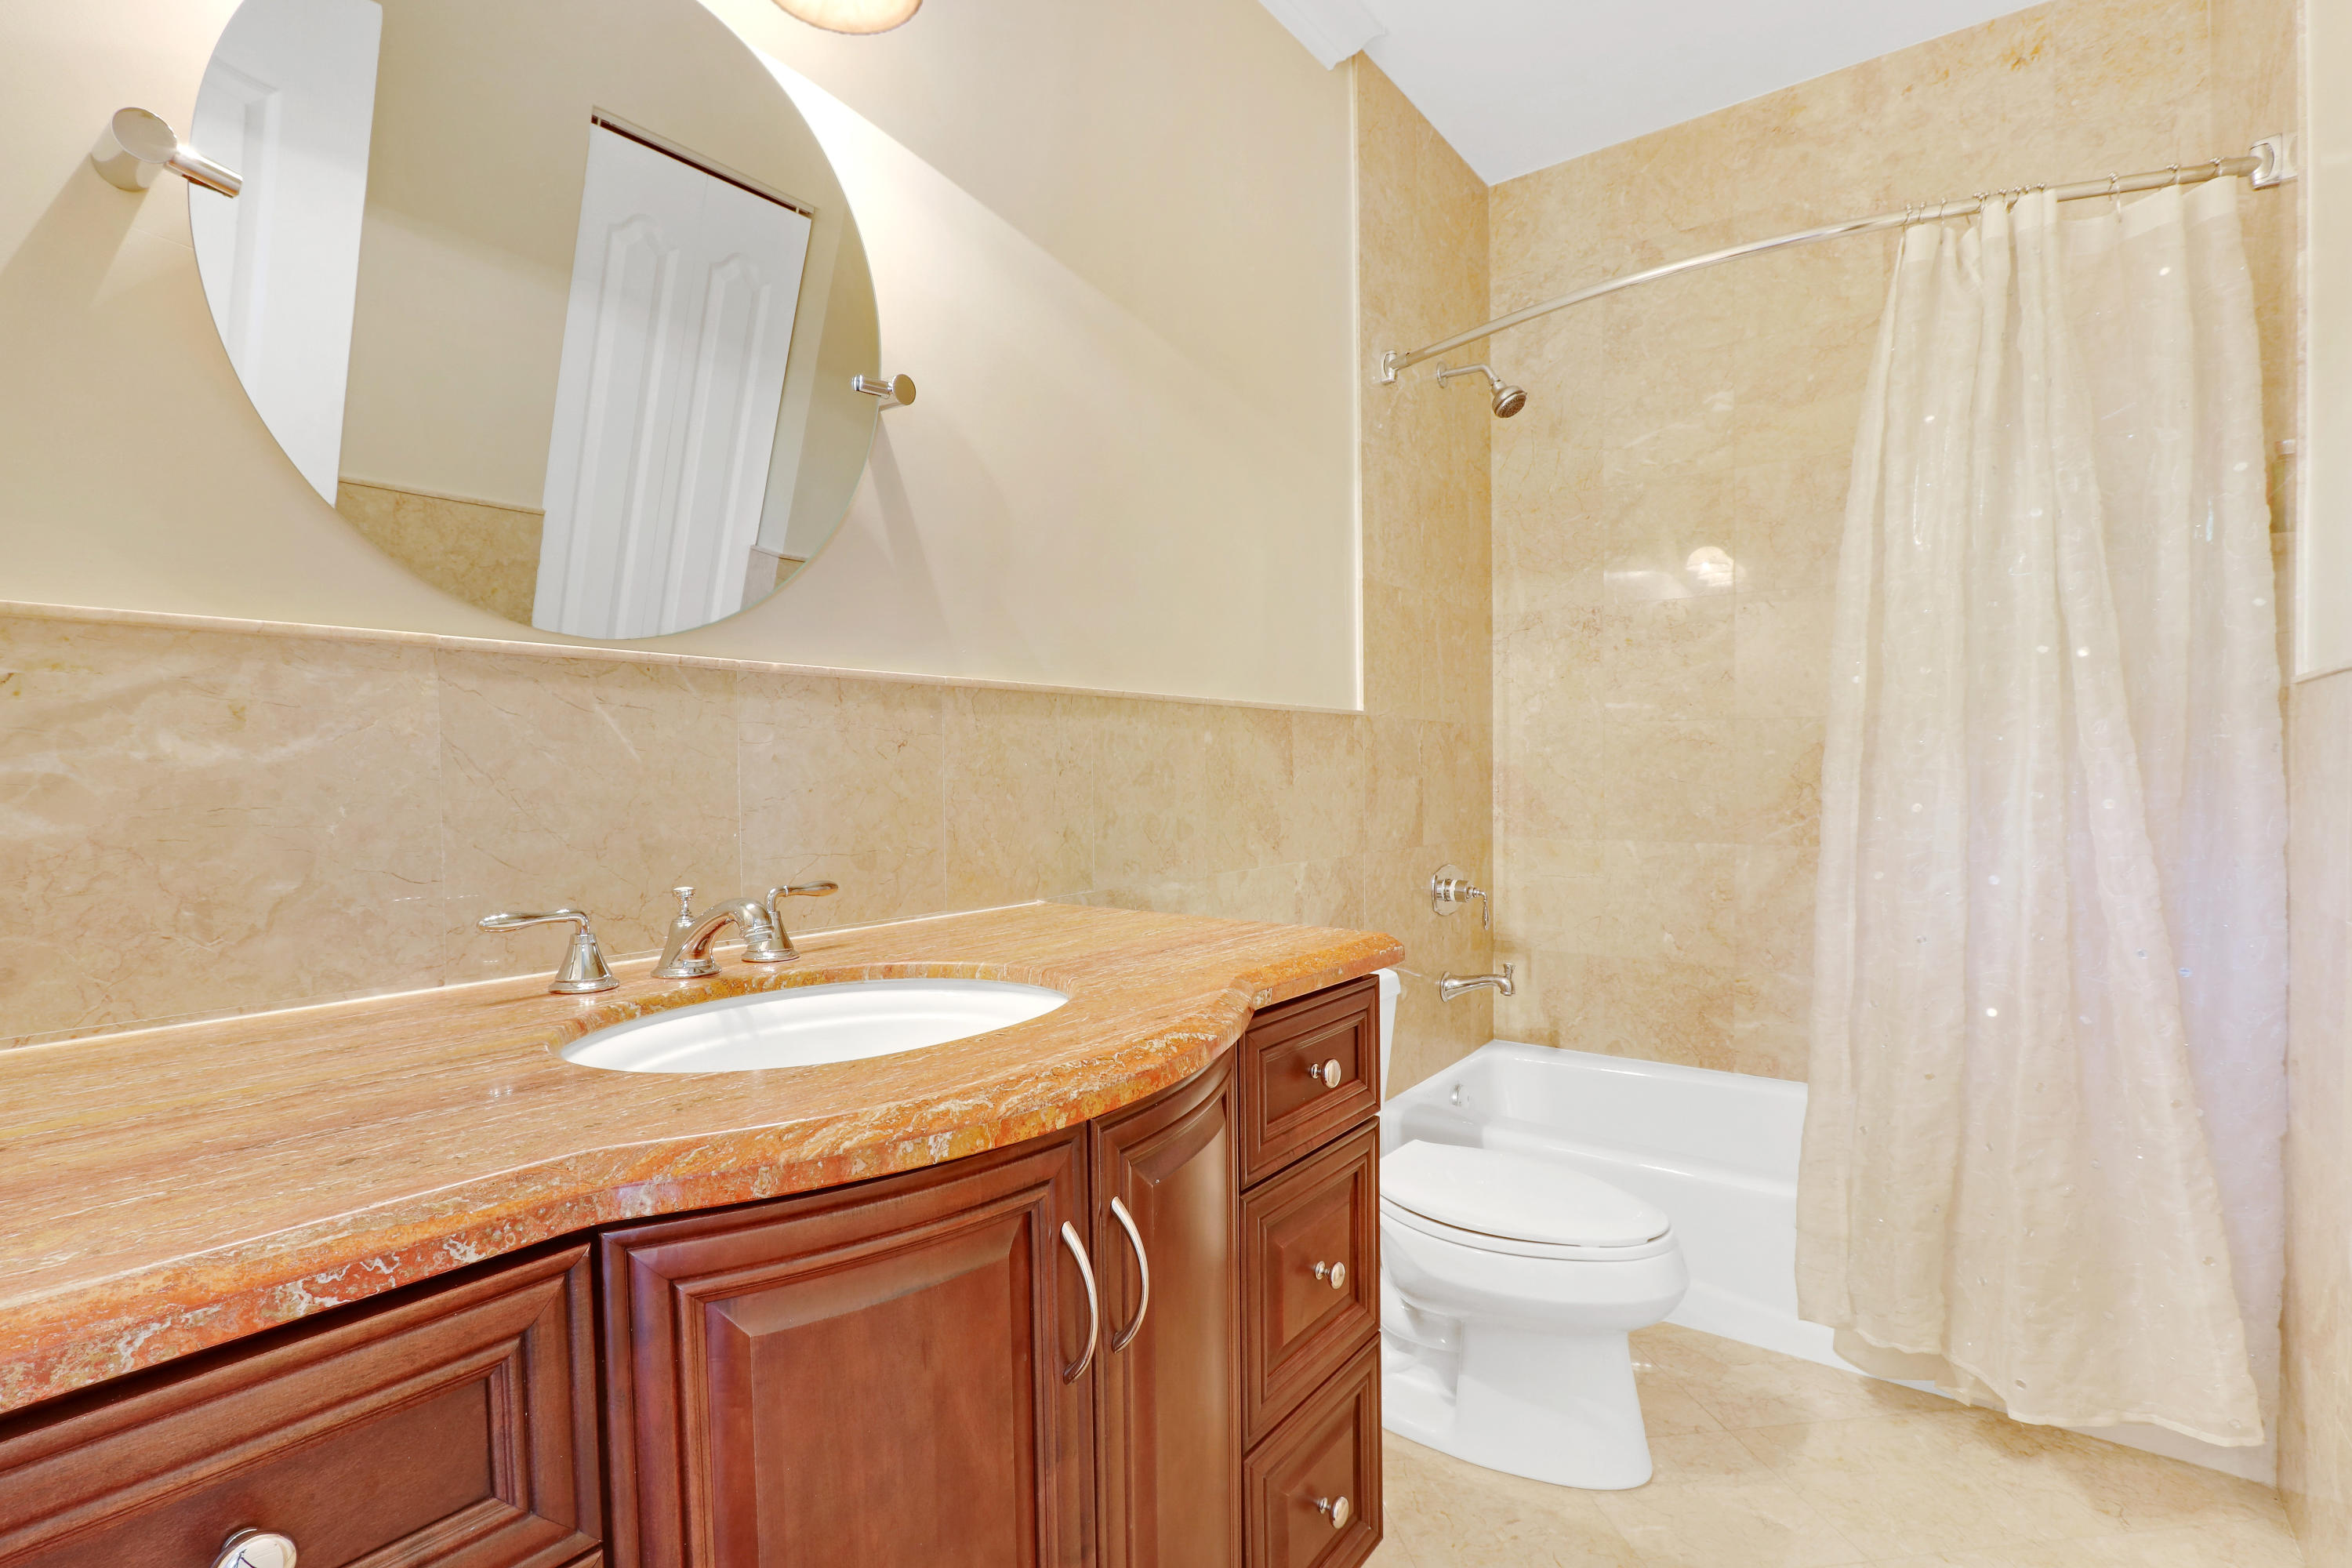 218 Pershing Way West Palm Beach, FL 33401 small photo 21